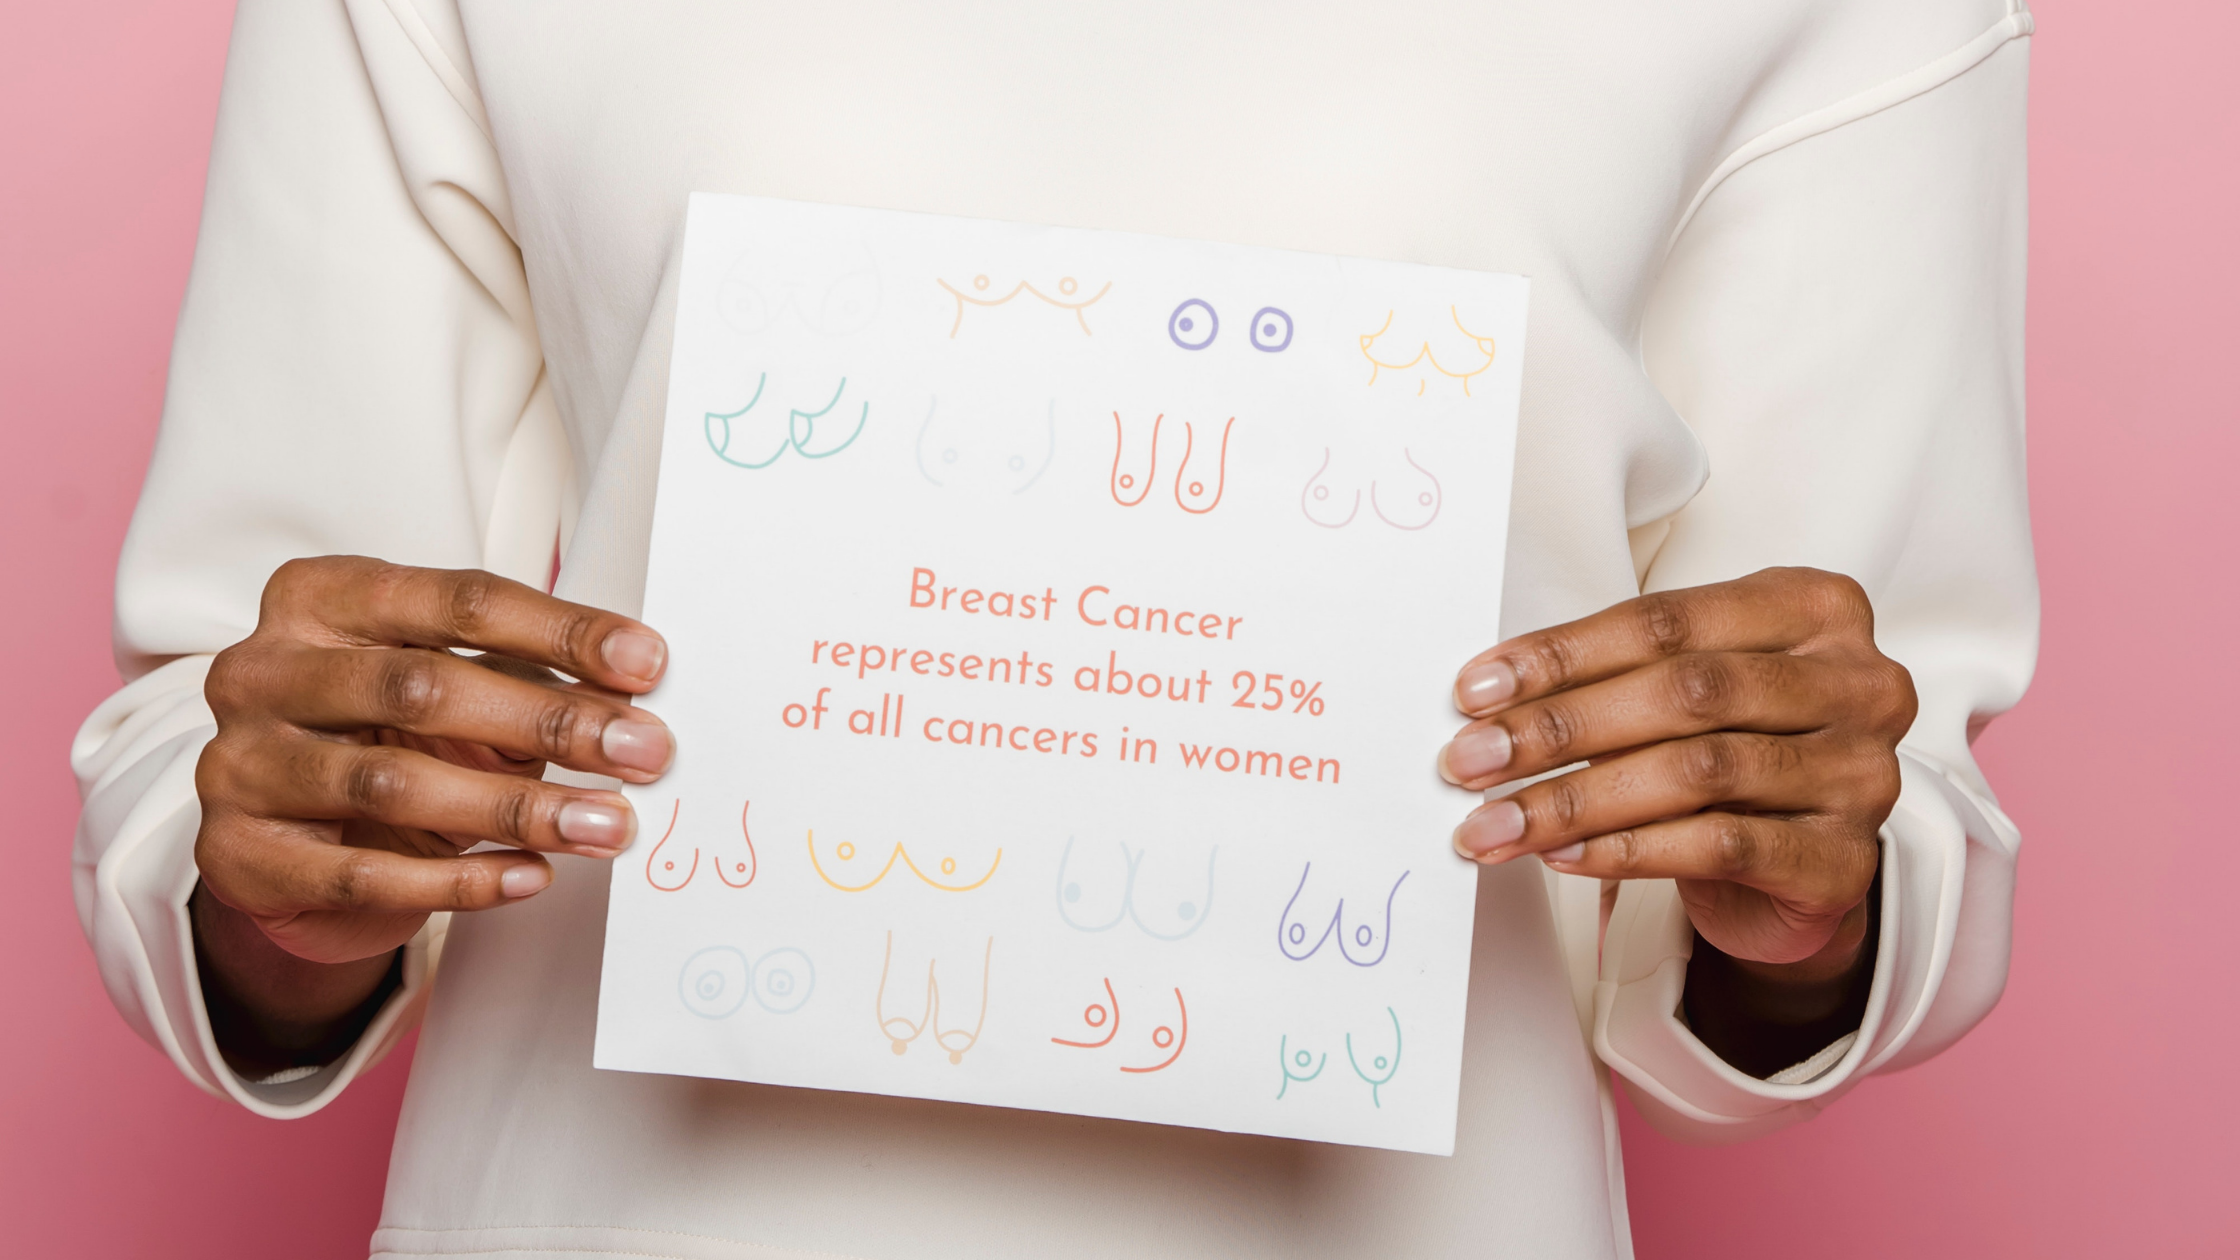 A woman holding a sign saying Breast Cancer represents 25% of all cancers in women